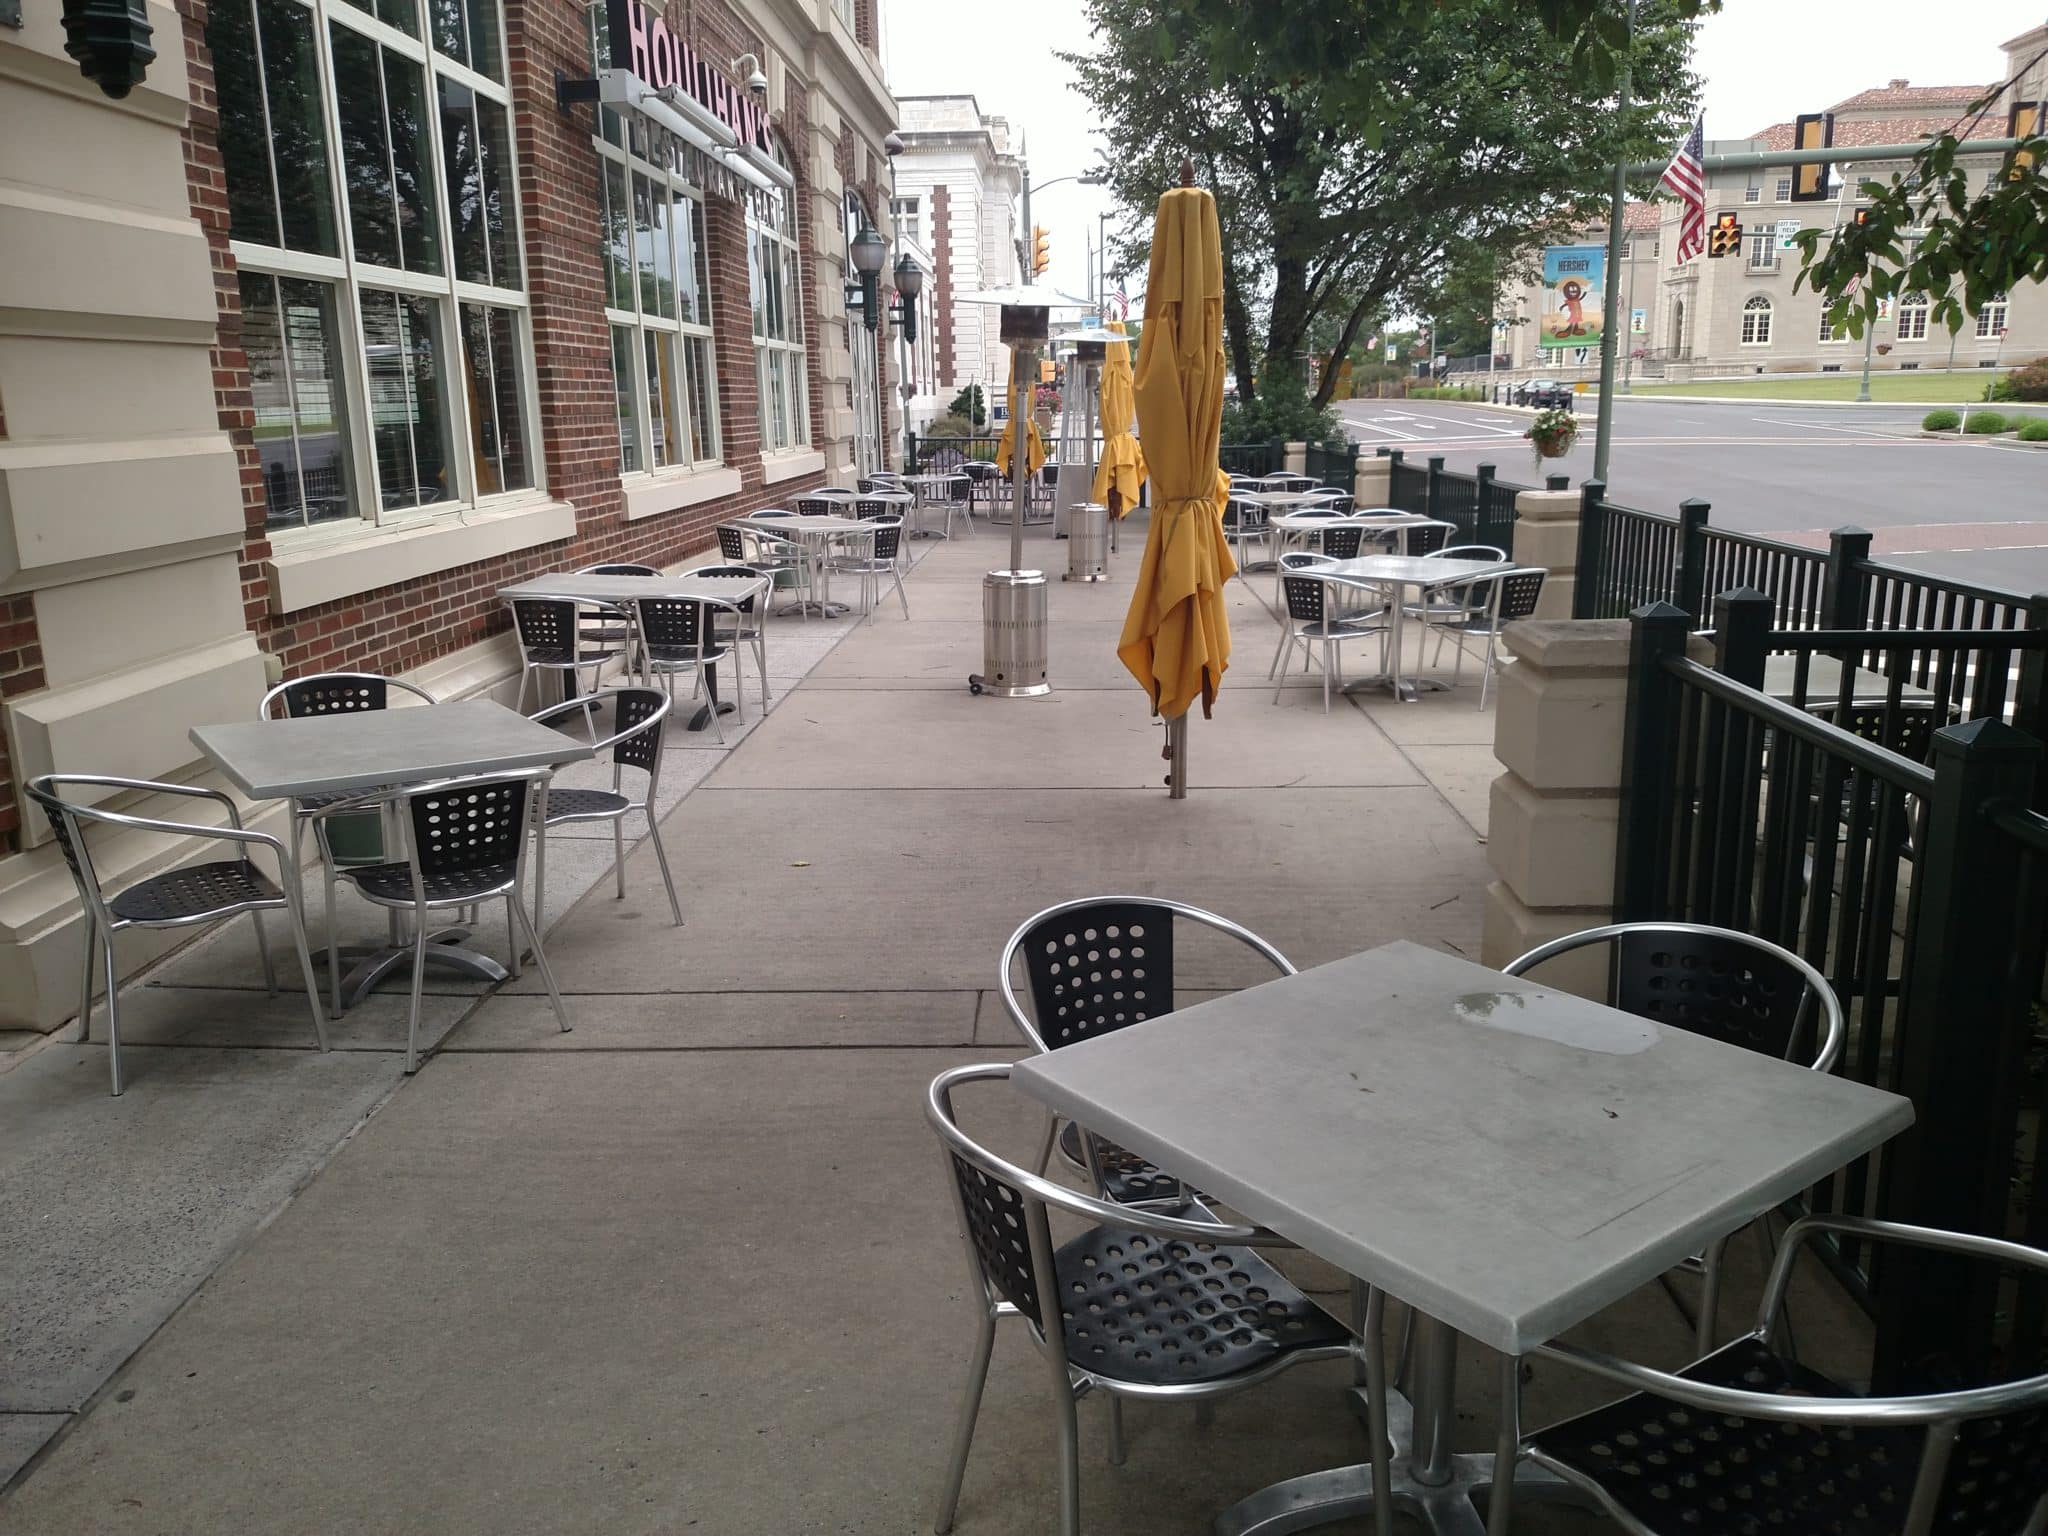 outdoor seating area showing tables and chairs